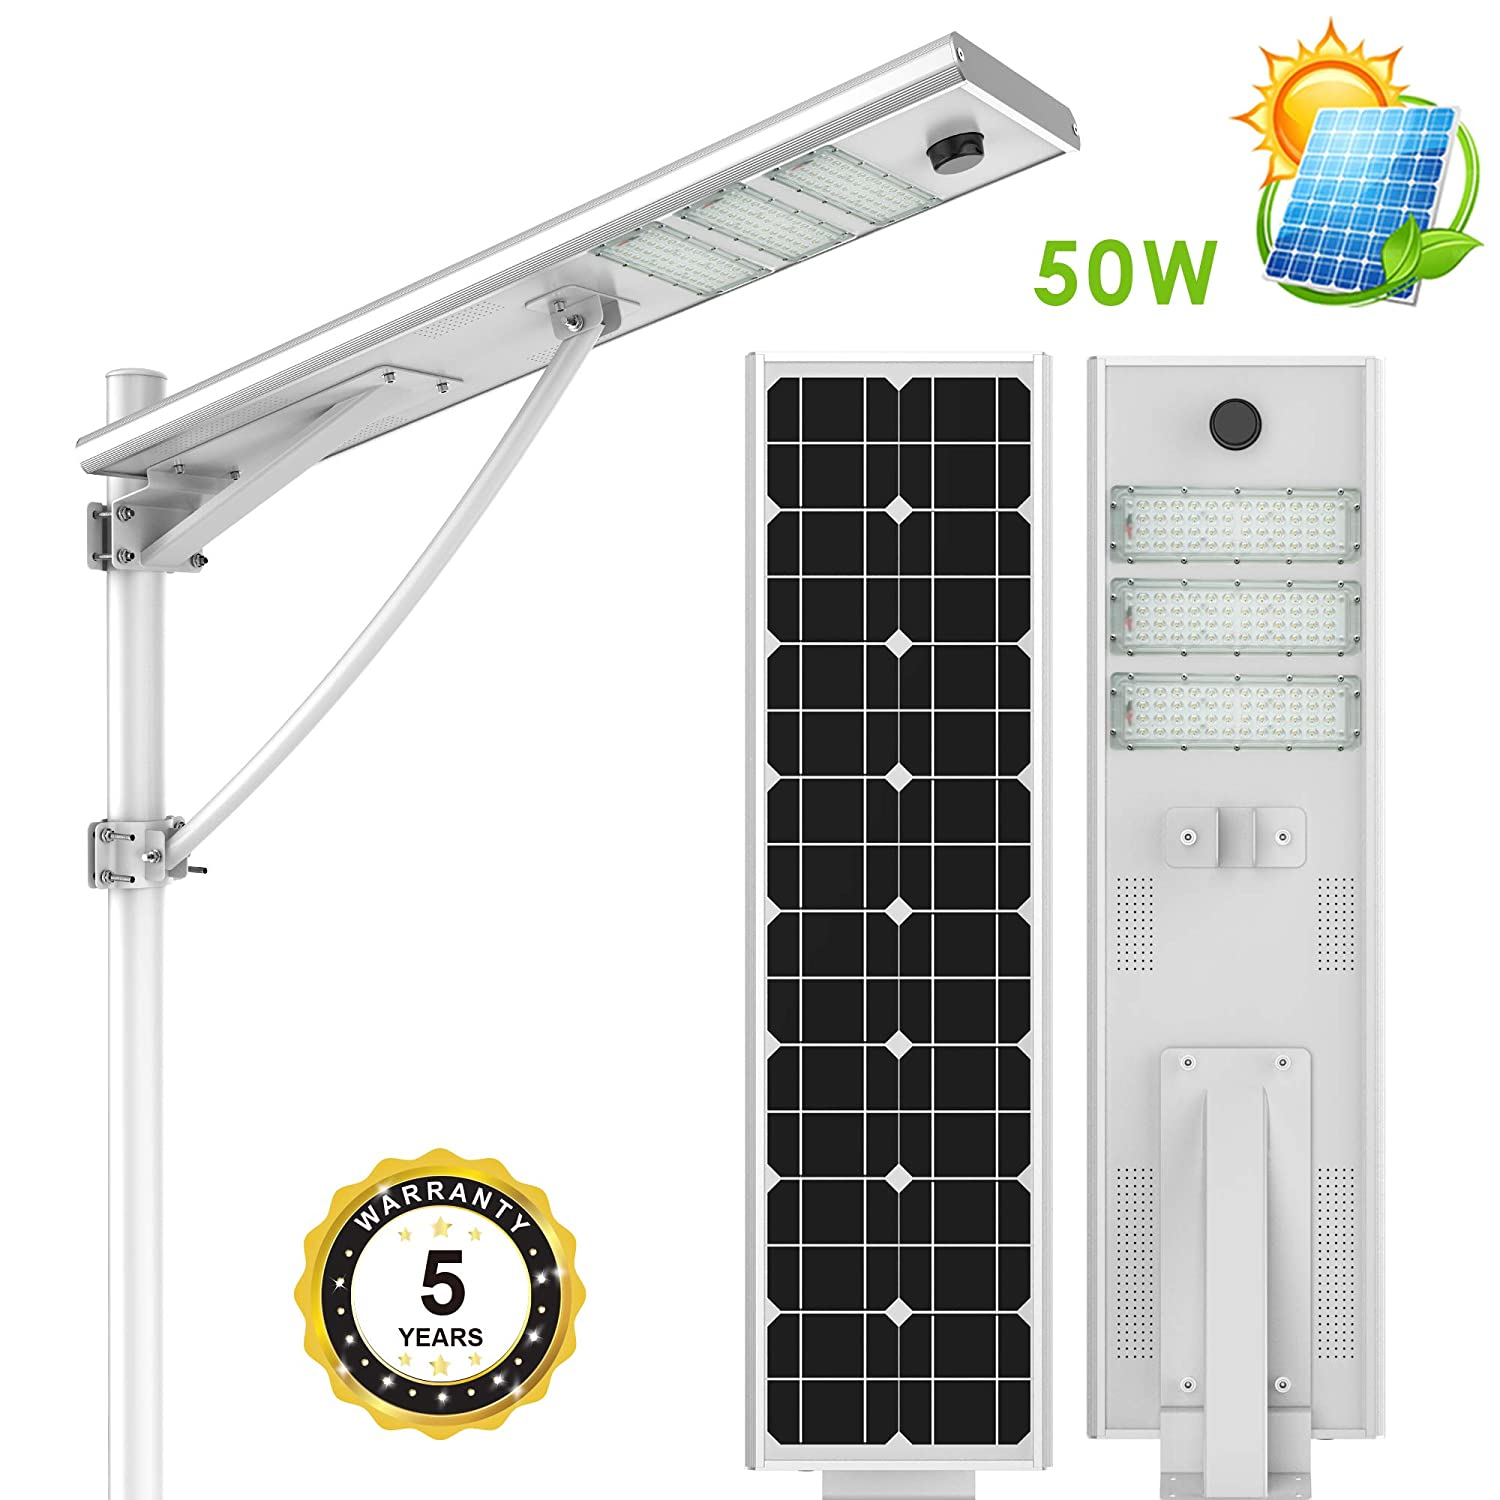 HPcom Solar LED Street Light Outdoor 50W, Auto On Off Dusk to Dawn, Integrated Waterproof IP65 Floodlight with PIR Motion Sensor, All-in-one Cordless Lamp, Ultra-bright 5500 Lumen, Yard Light for Area